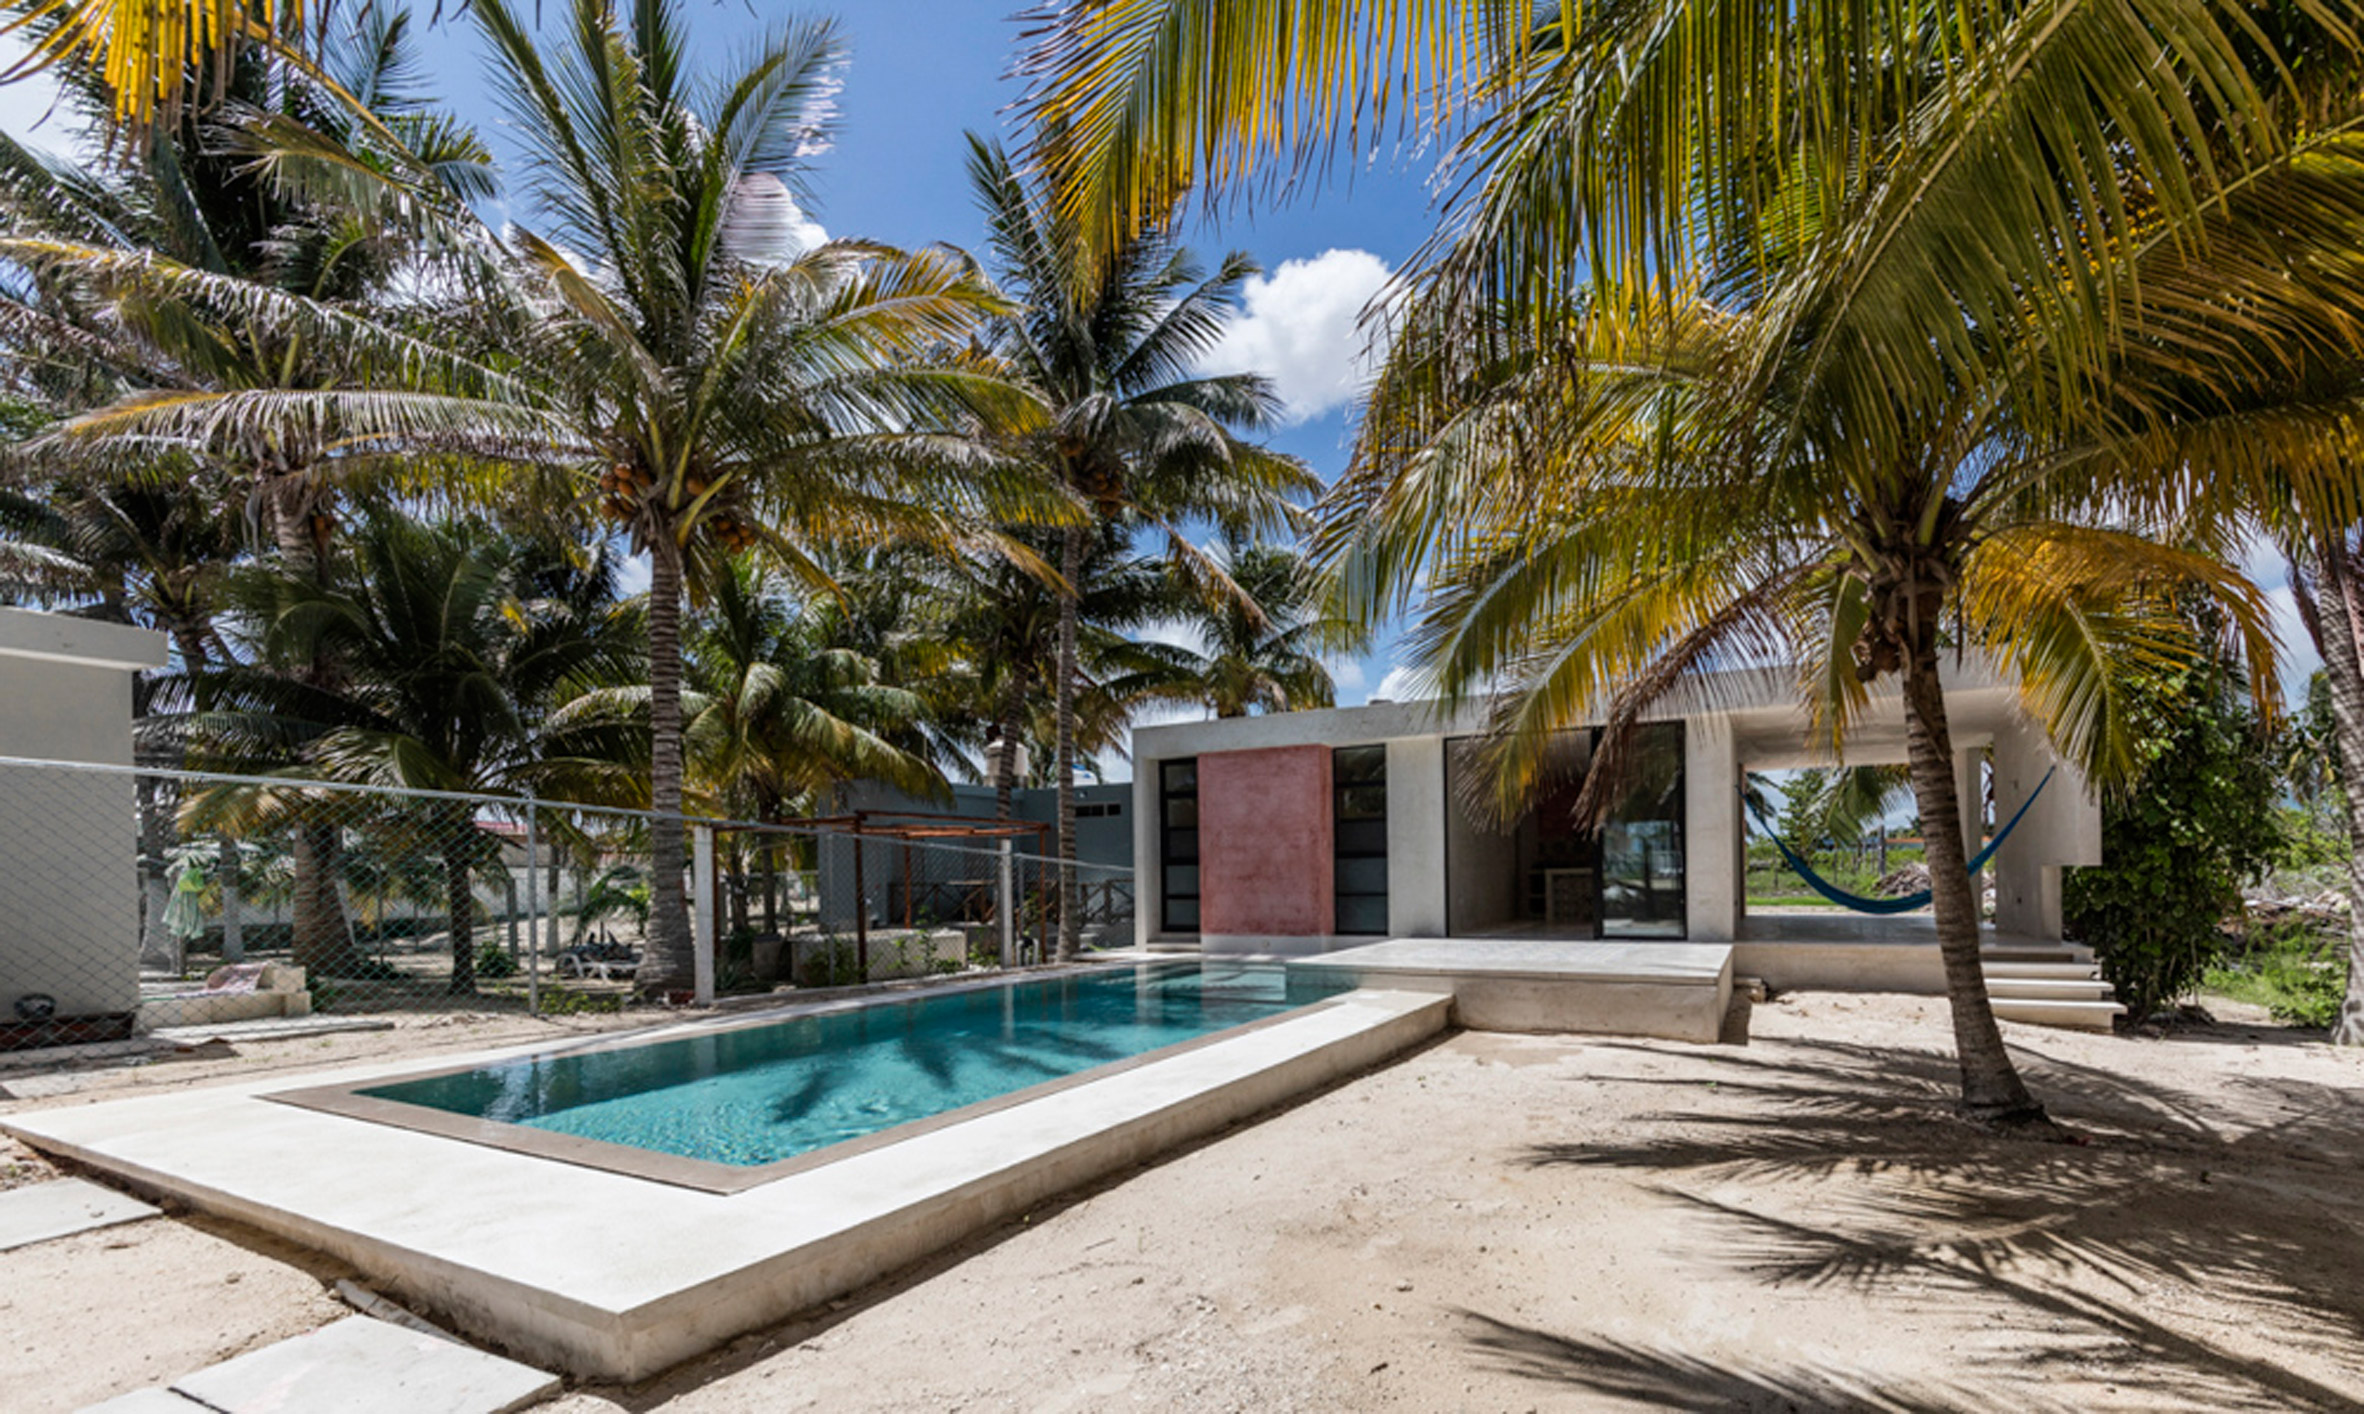 Modest holiday retreat by David Cervera nestles amongst the palms in Mexico